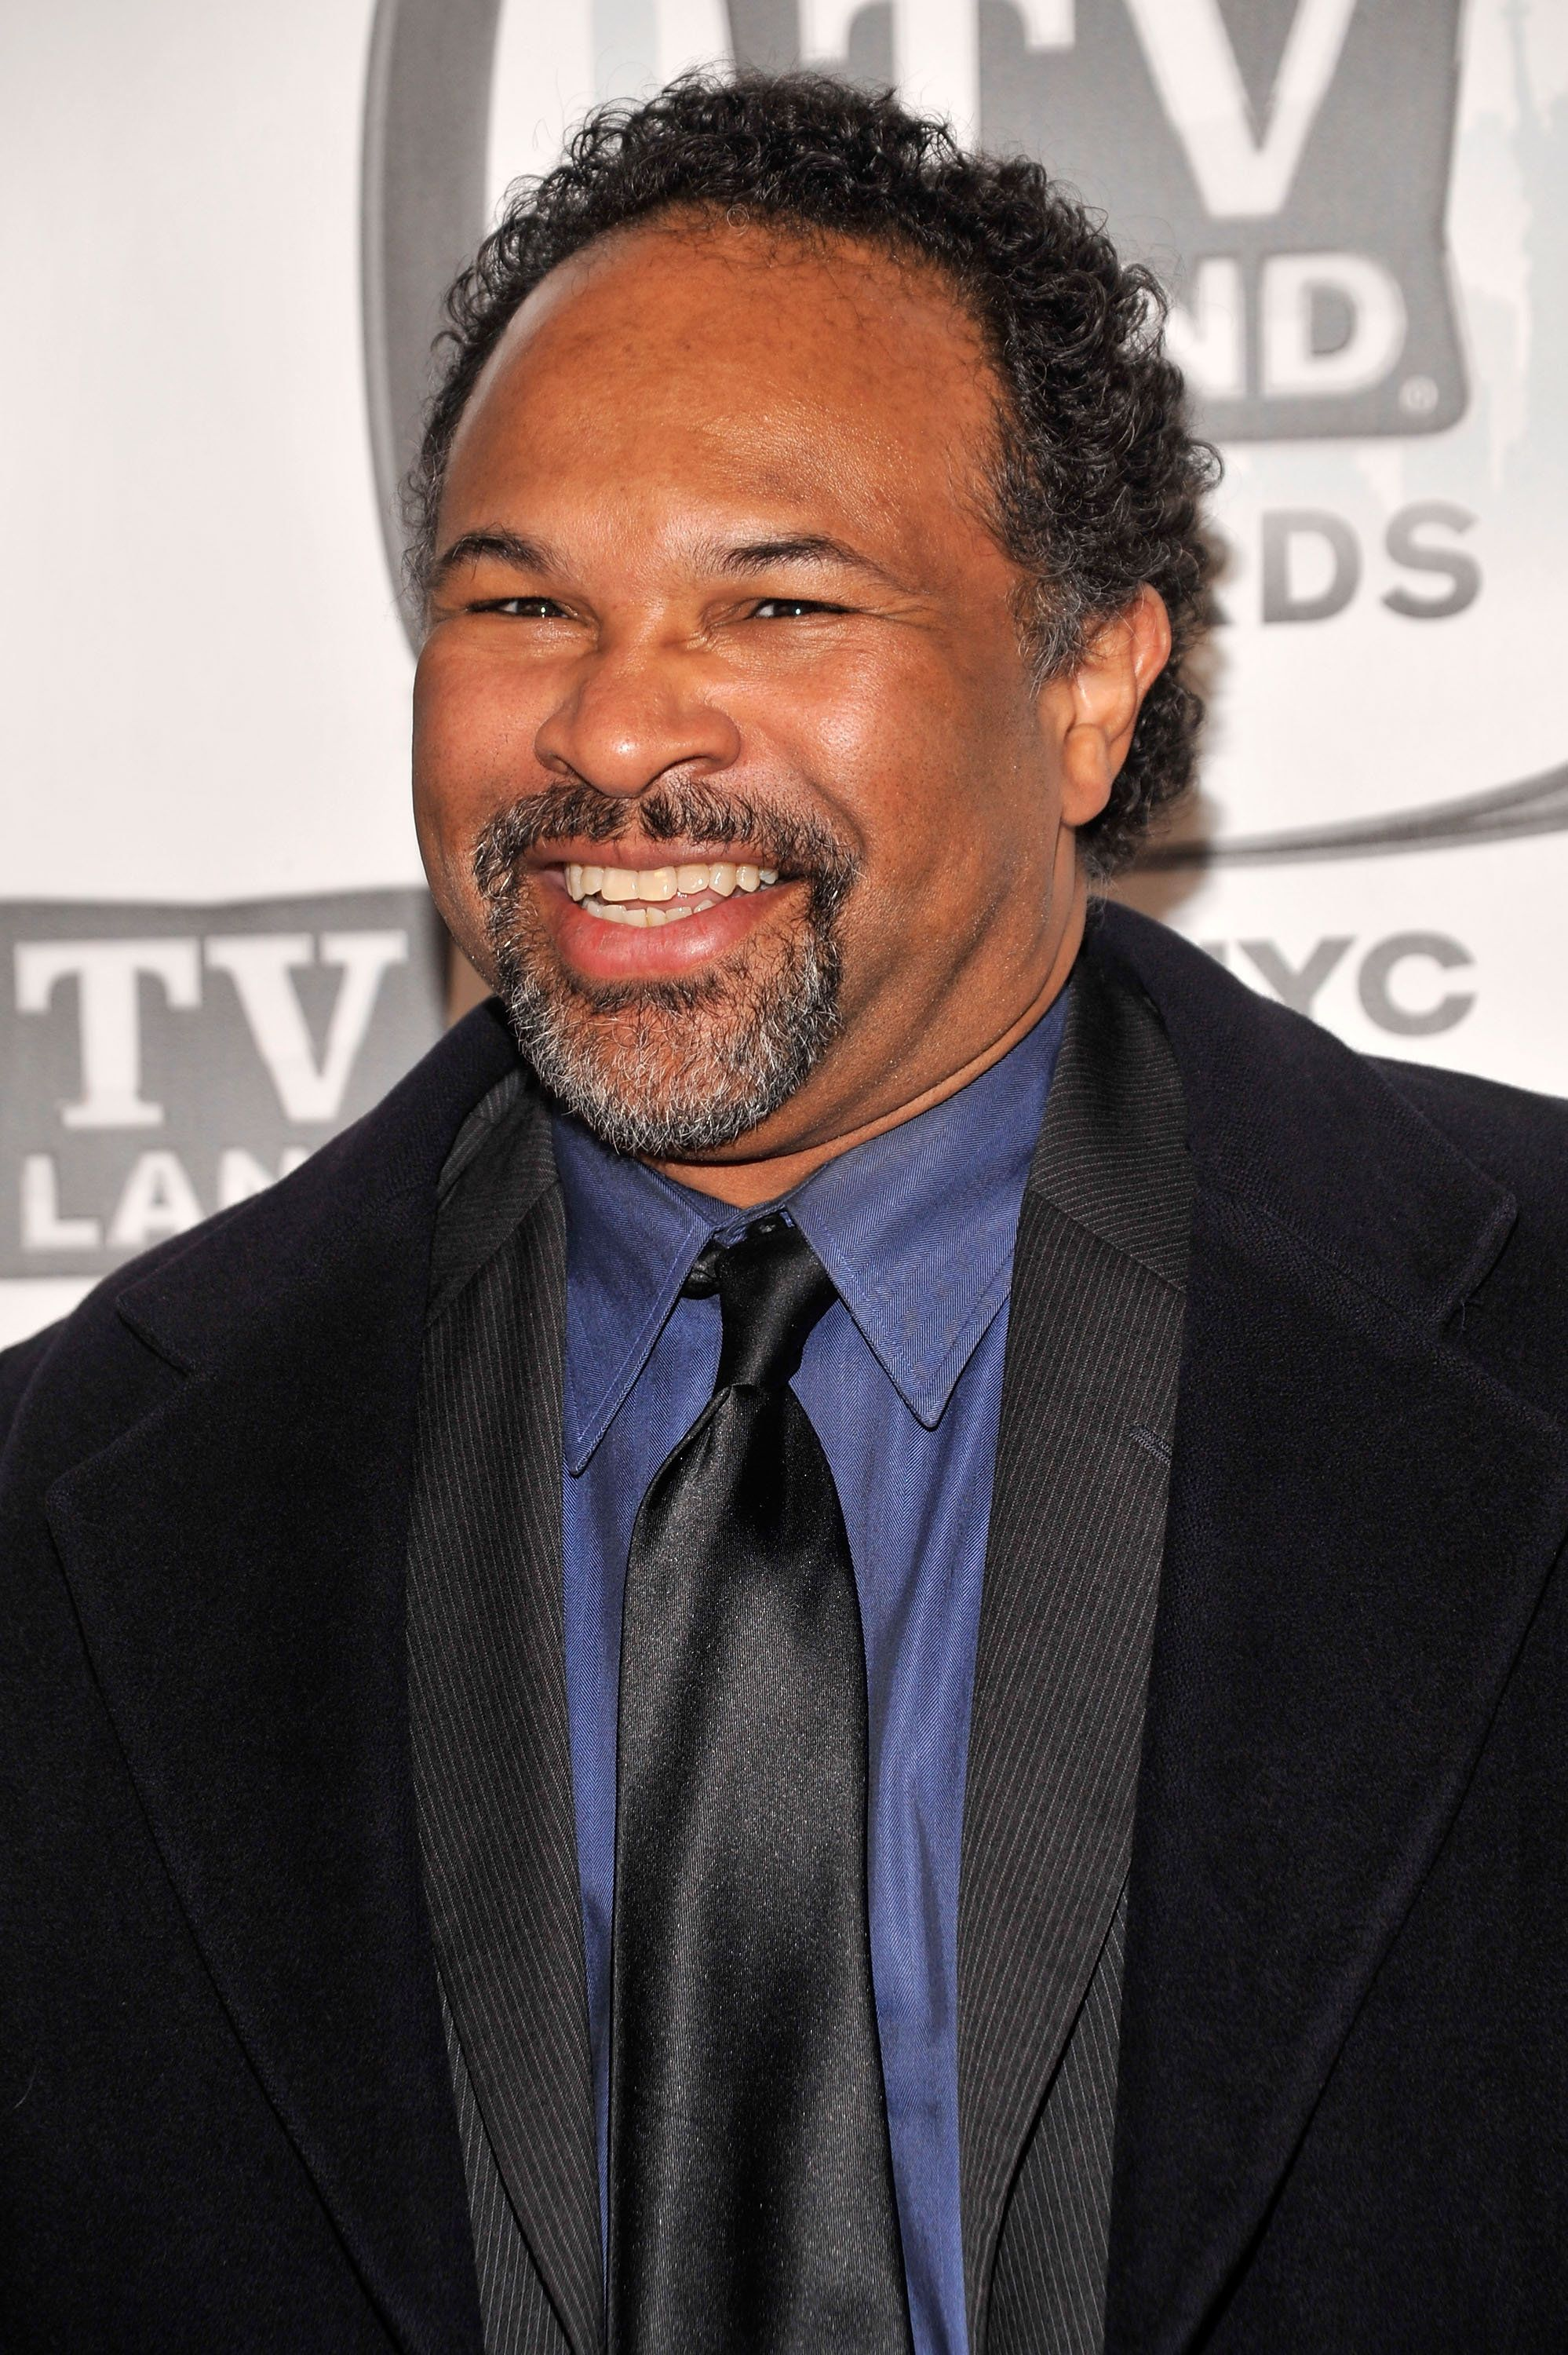 Actor Geoffrey Owens attends the 9th Annual TV Land Awards at the Javits Center on April 10, 2011 in New York City. (Photo by Gary Gershoff/WireImage)